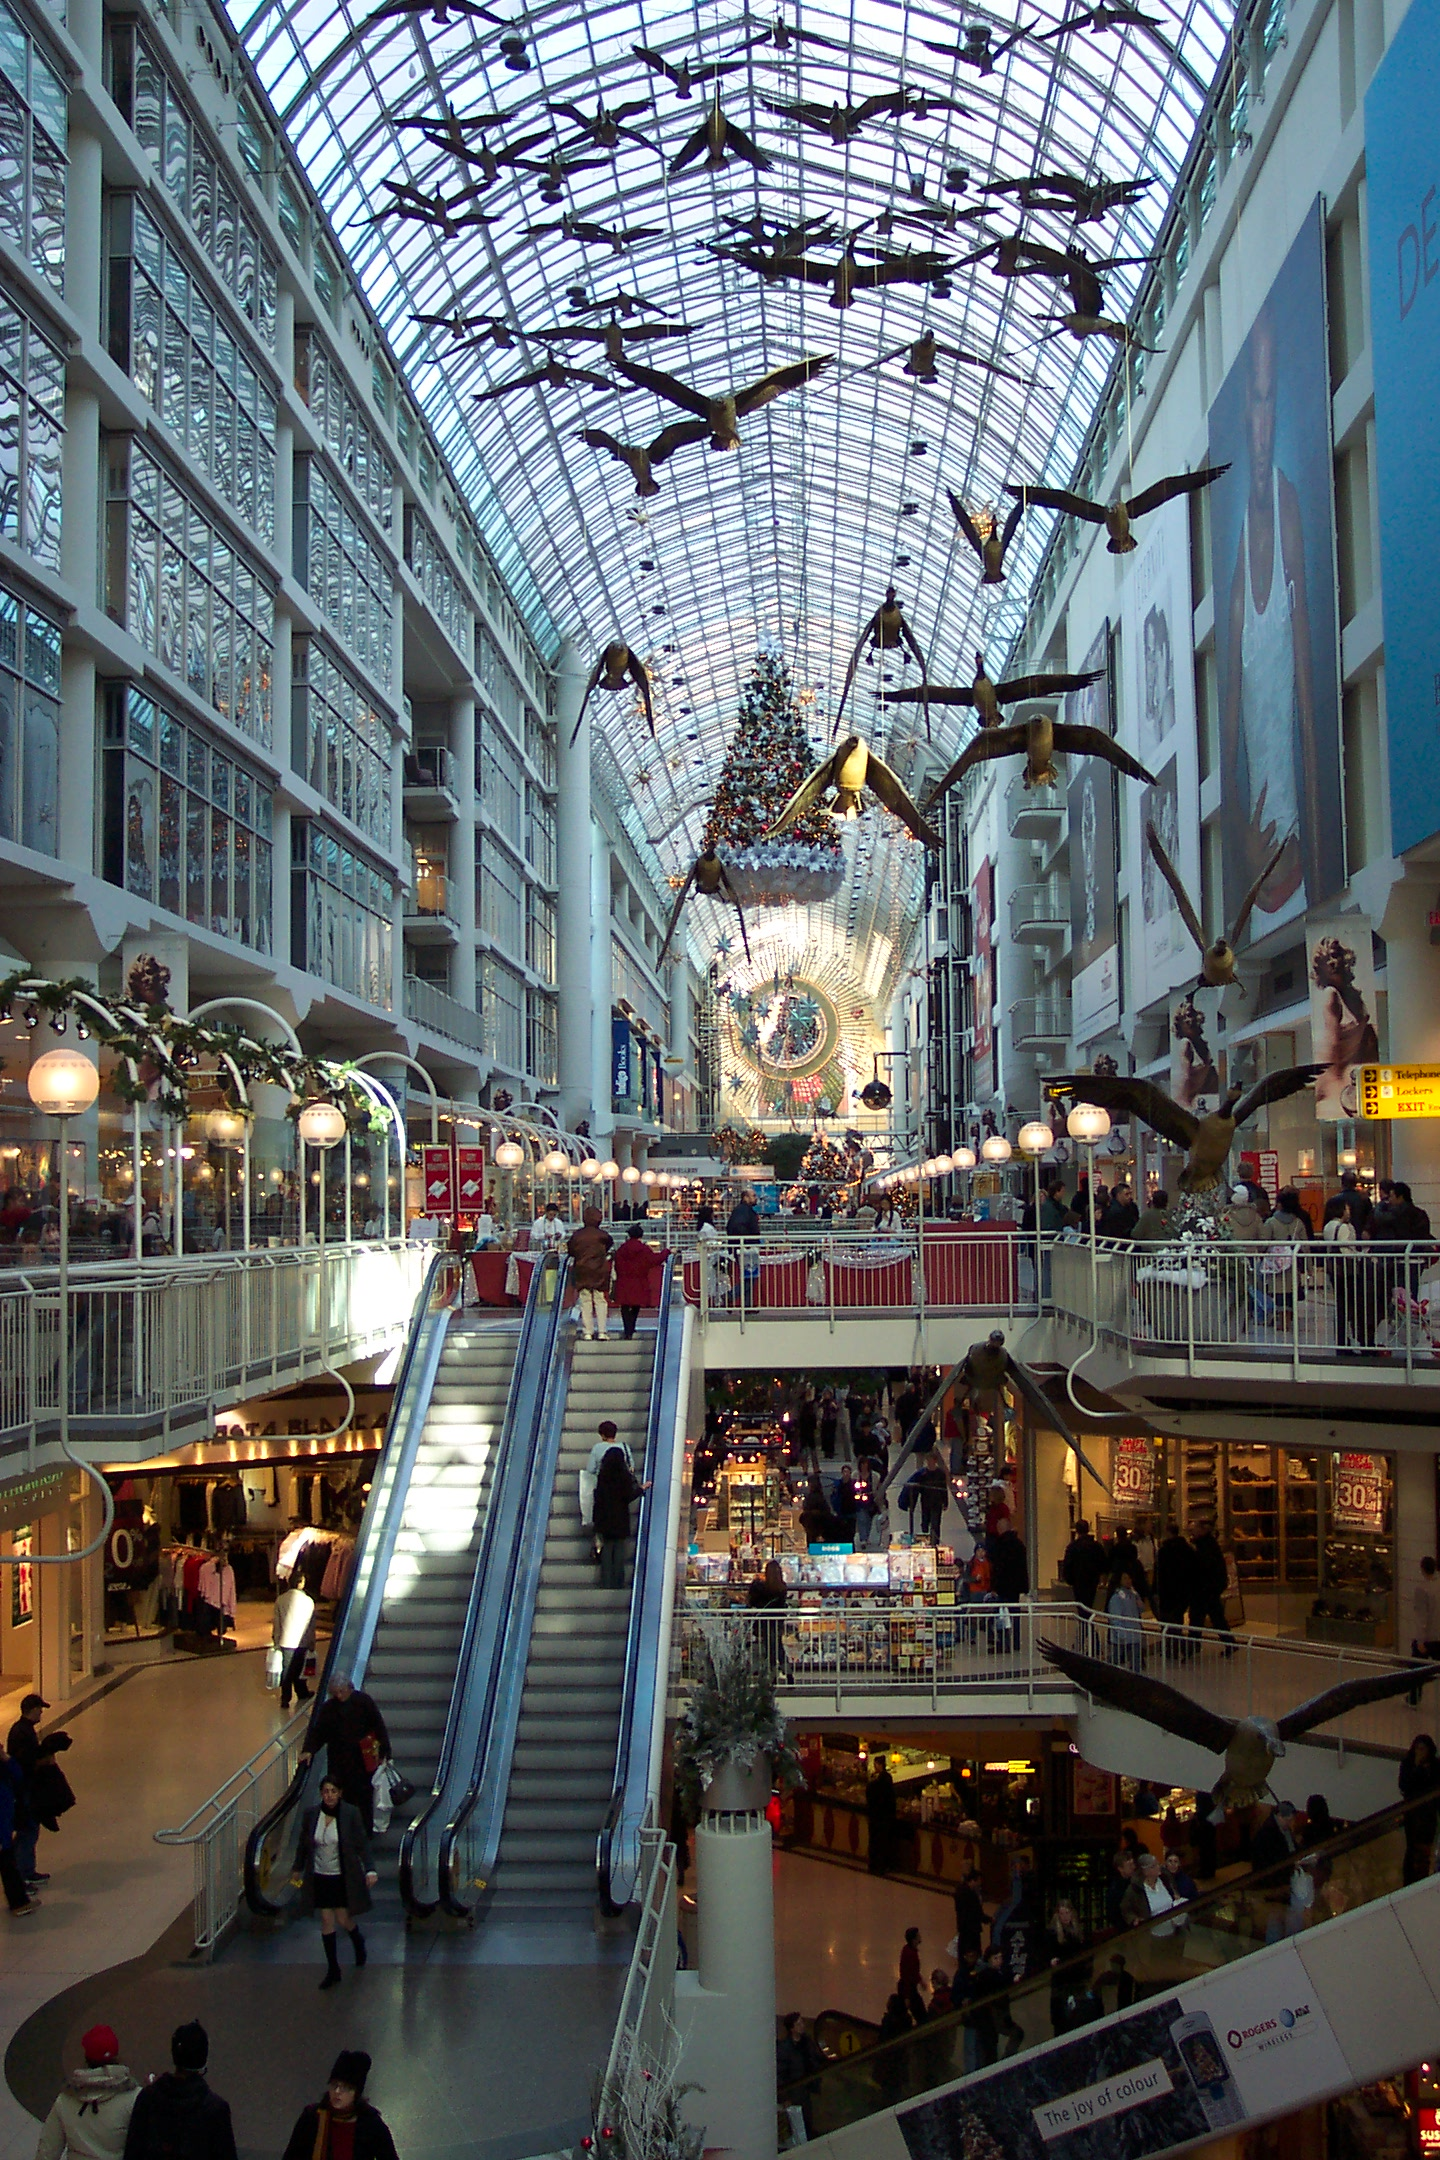 File:Toronto Eaton Centre on Boxing Day.jpg - Wikipedia, the free ...